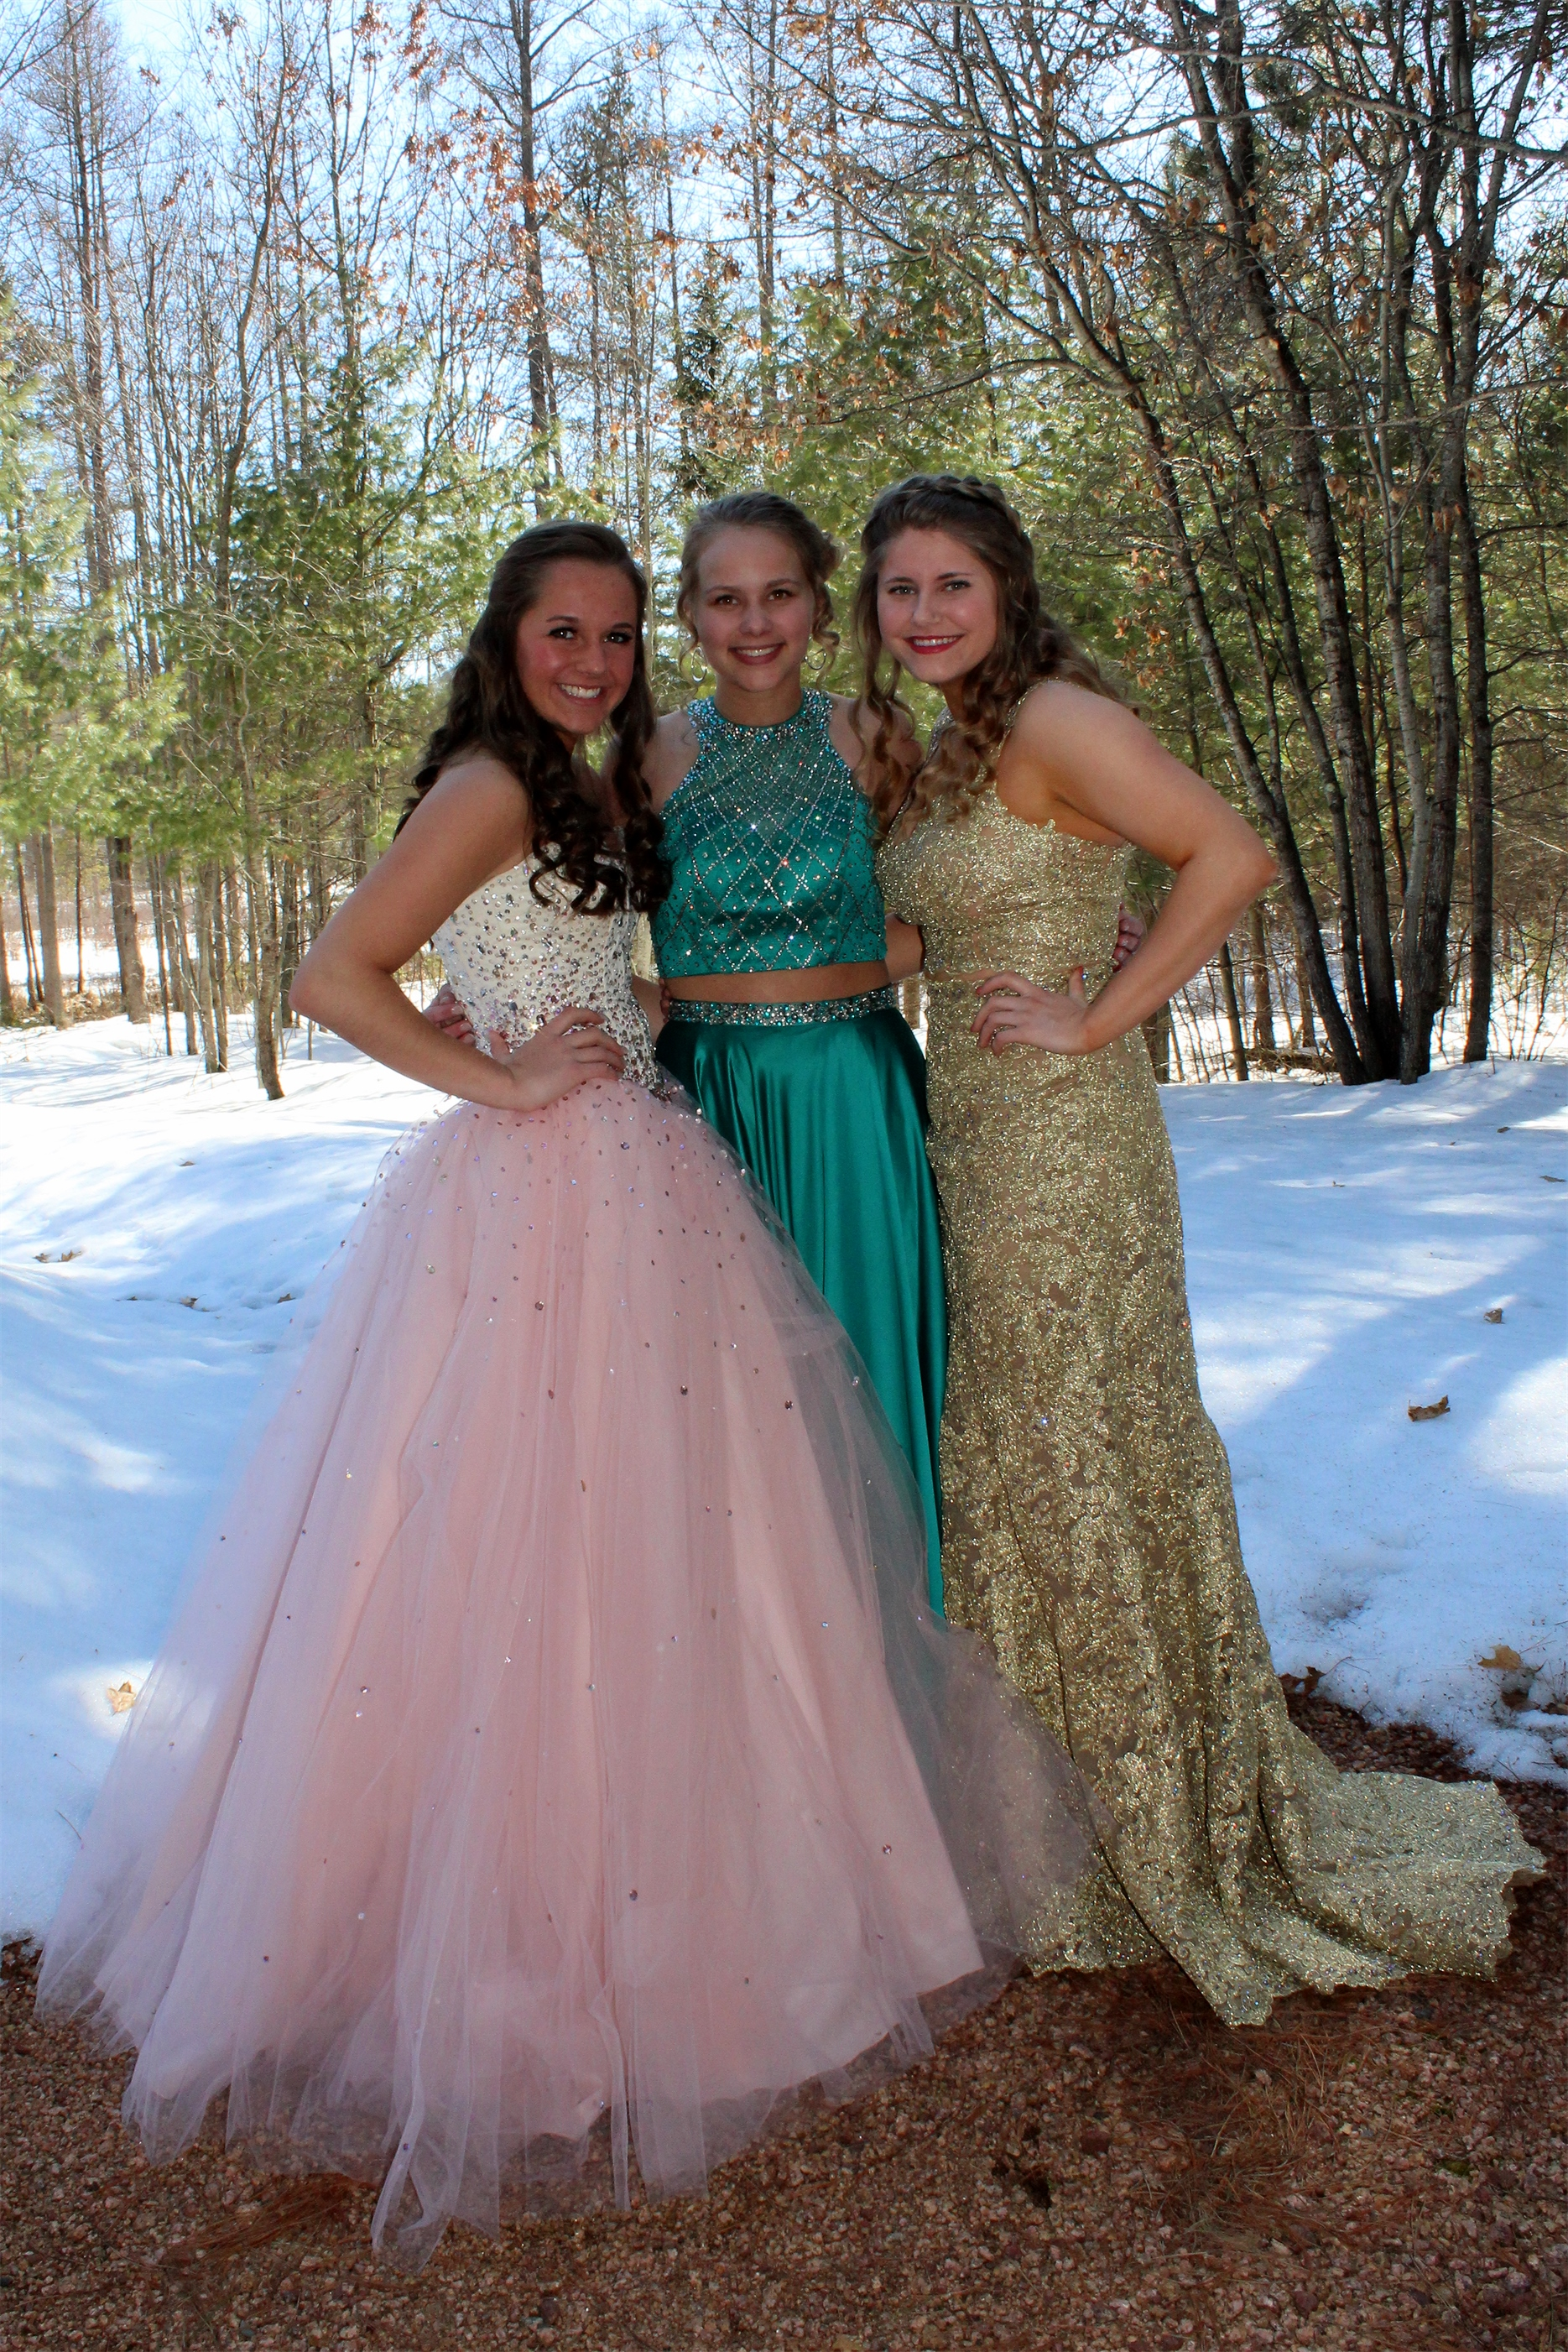 Ashley, Kayla and Taren before their high school prom, held in the Lakeland area. Kim Johnson photo